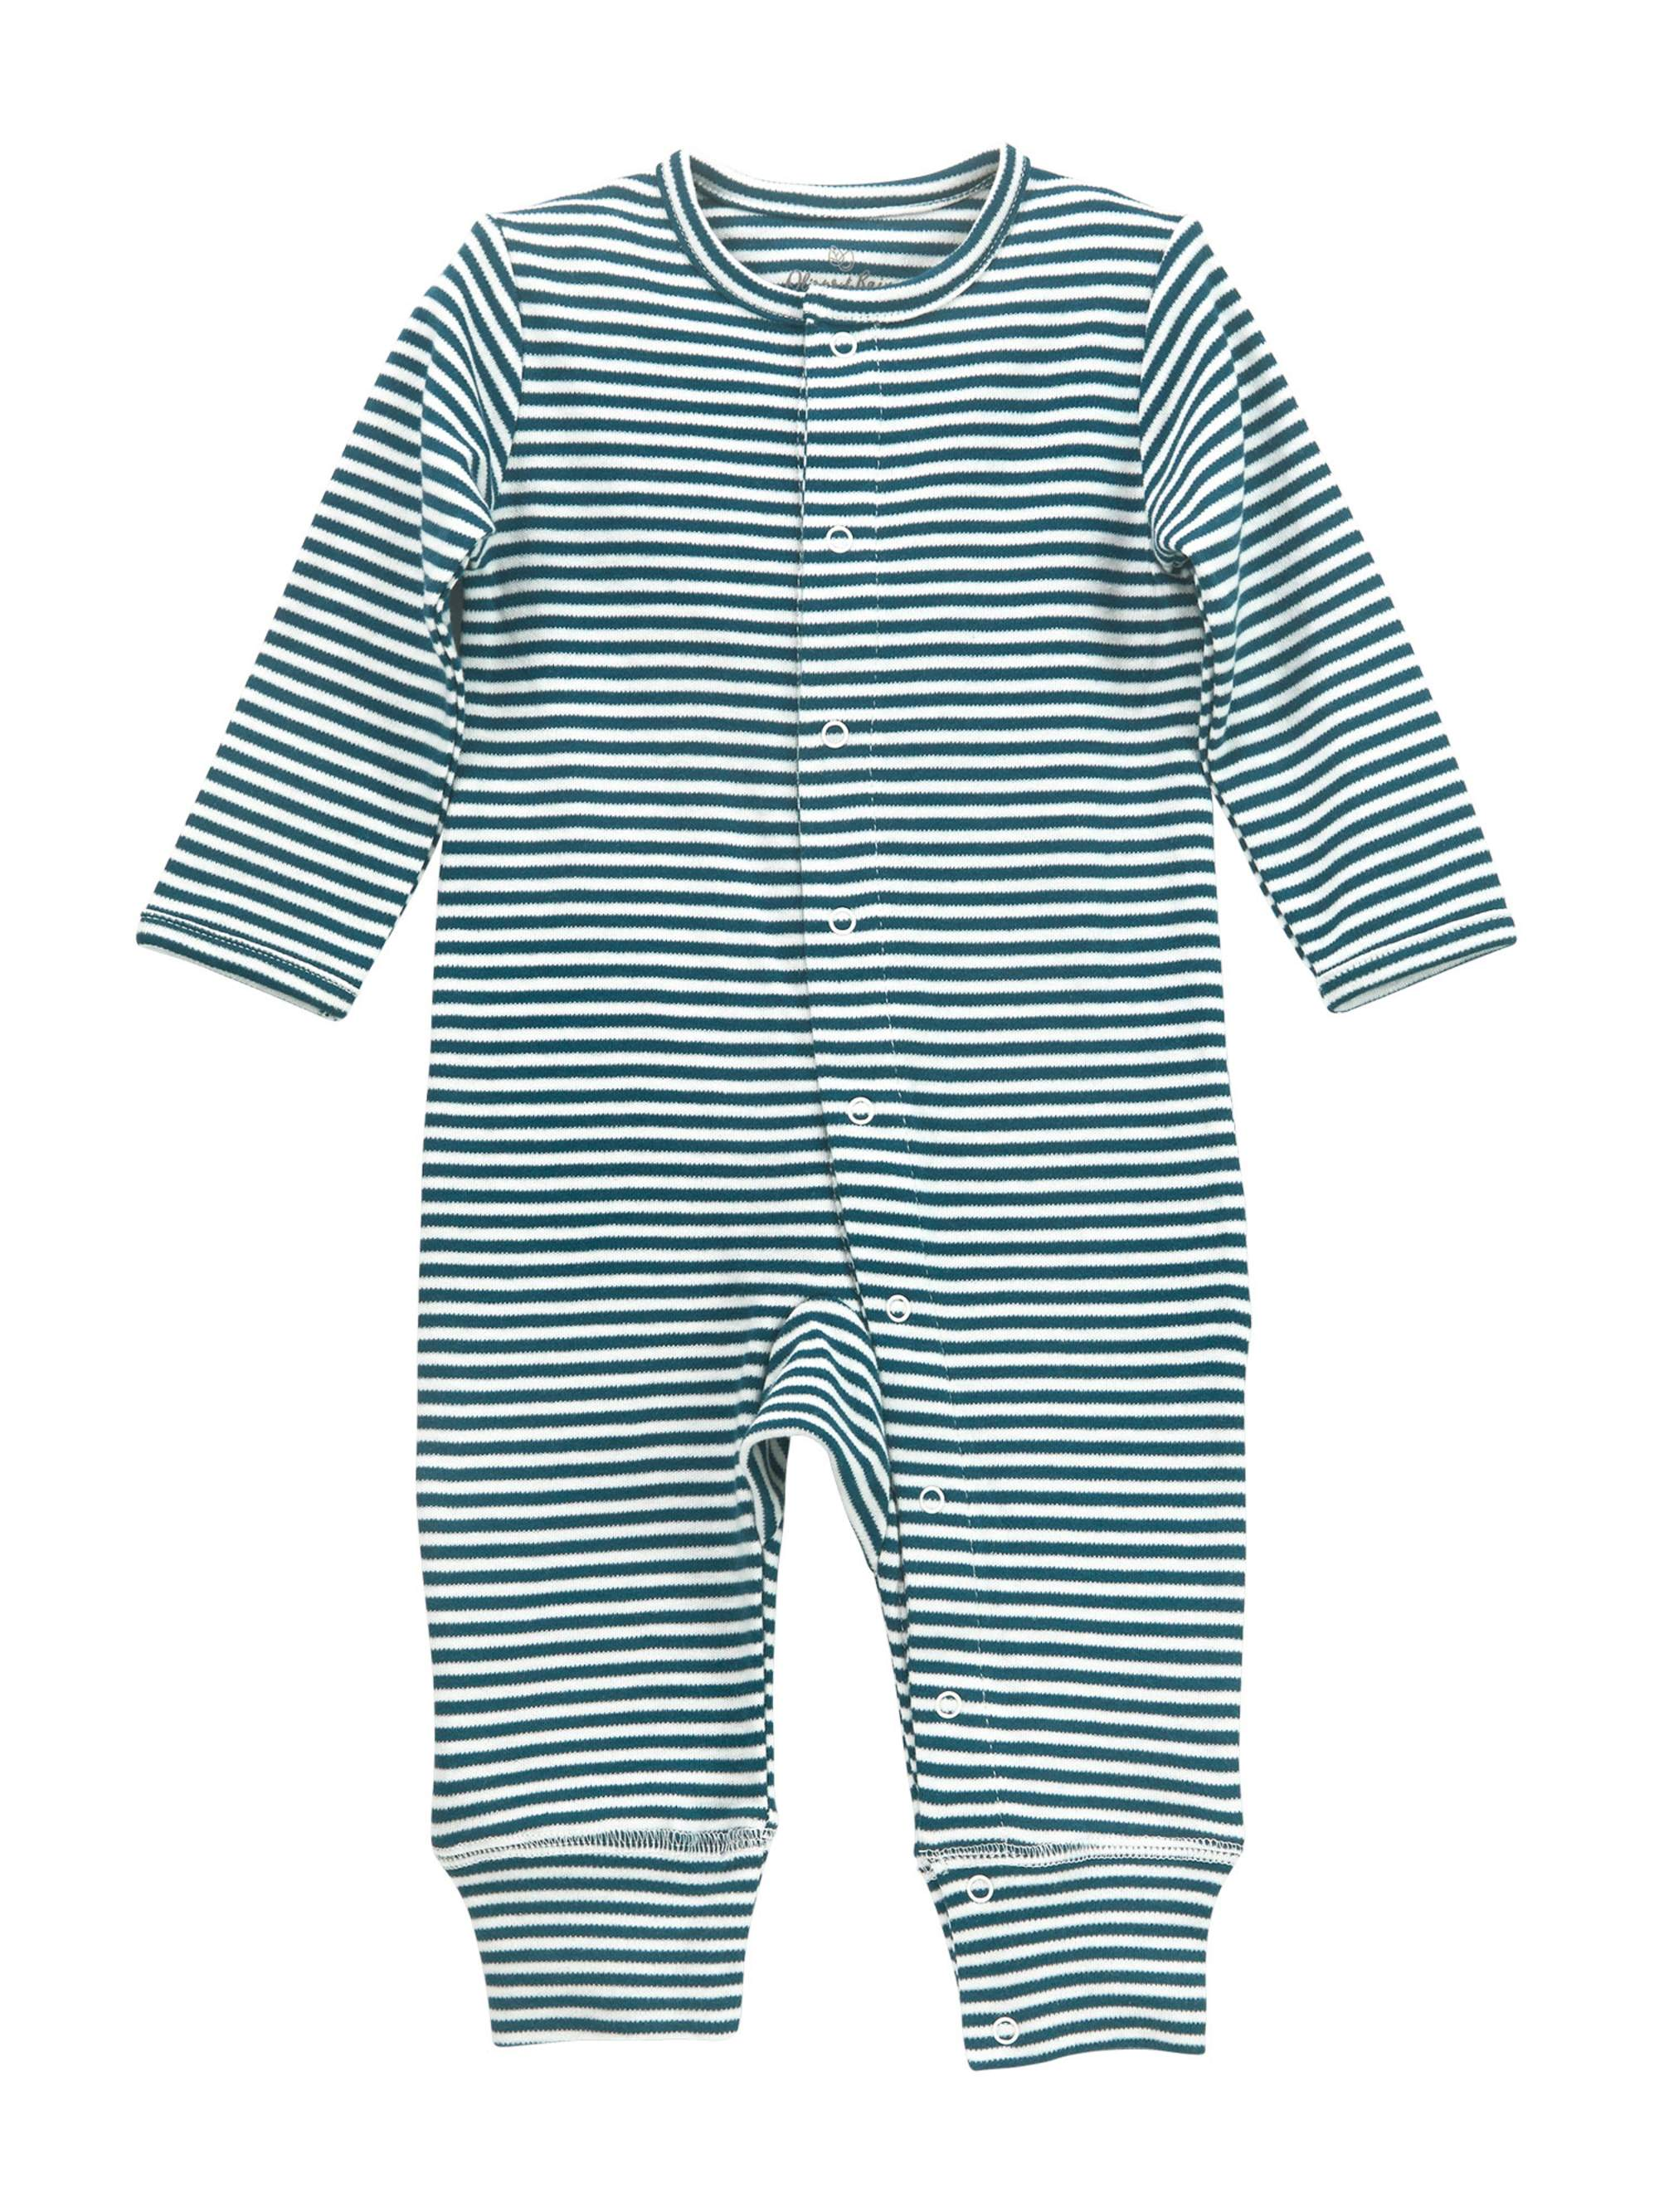 Oliver & Rain Teal Striped Button-Front One Piece Unionsuit Outfit (Baby Girls or Baby Boys Unisex)